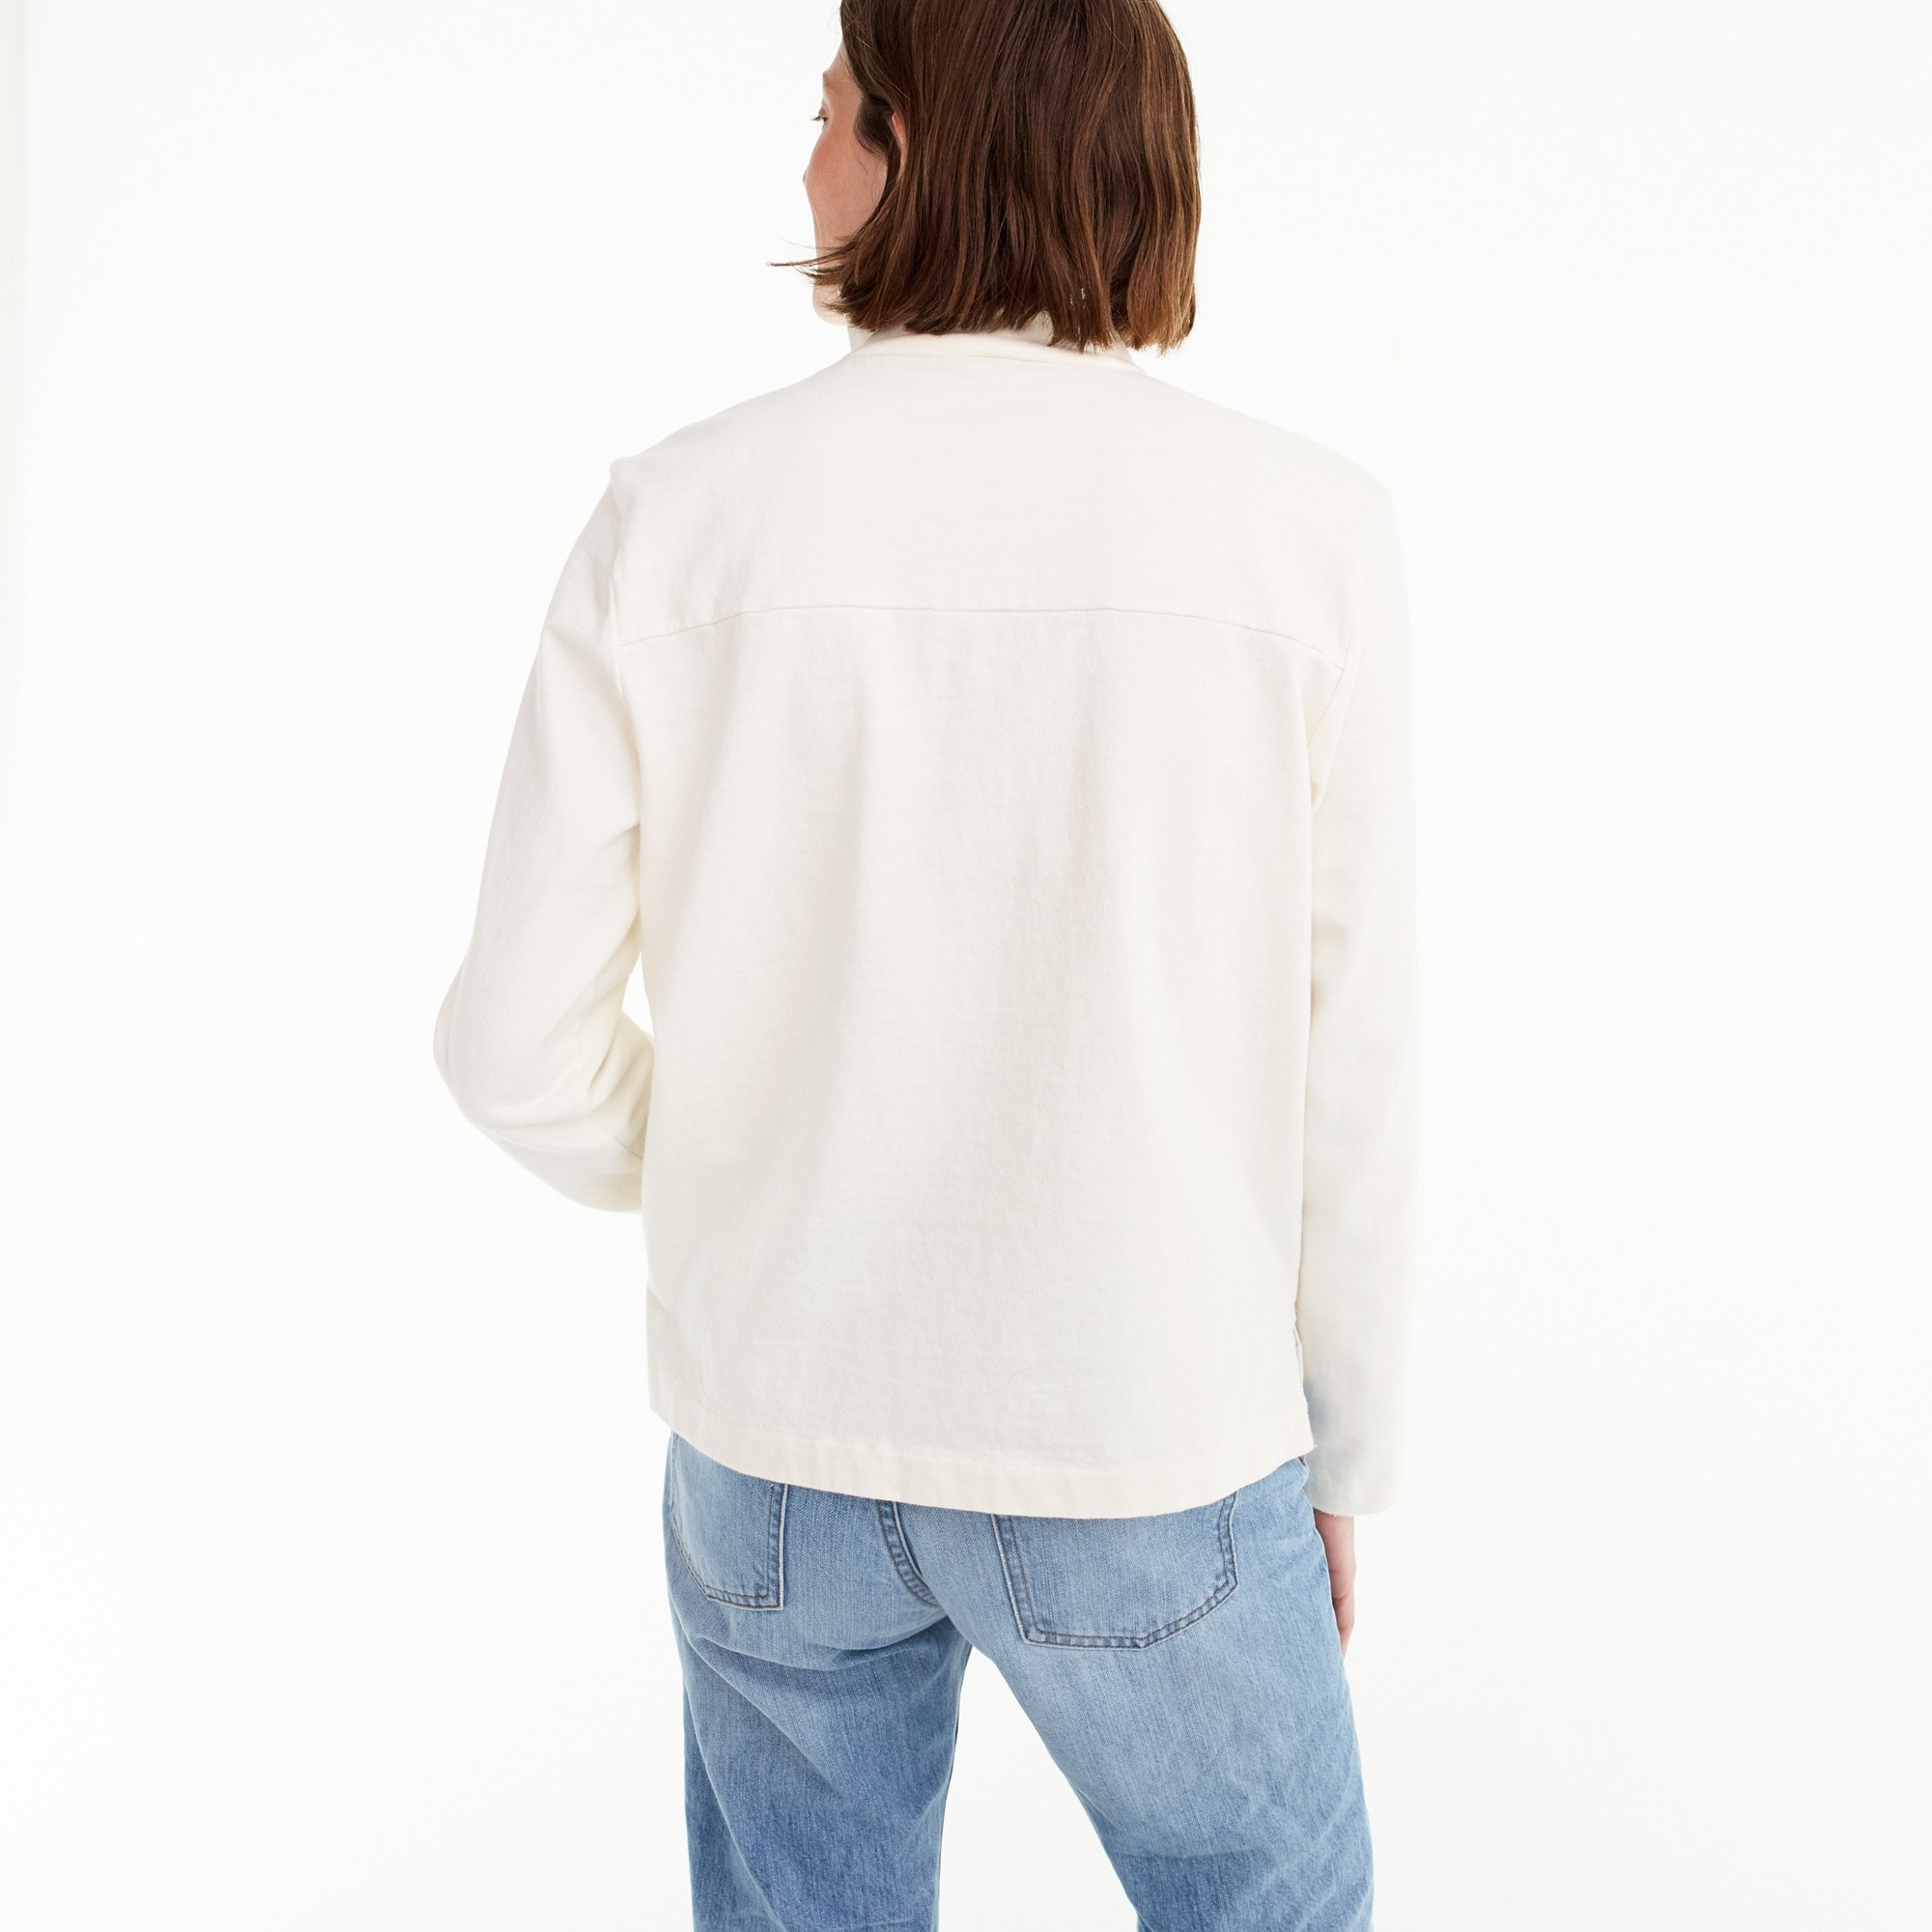 Image 4 for Button-shoulder turtleneck